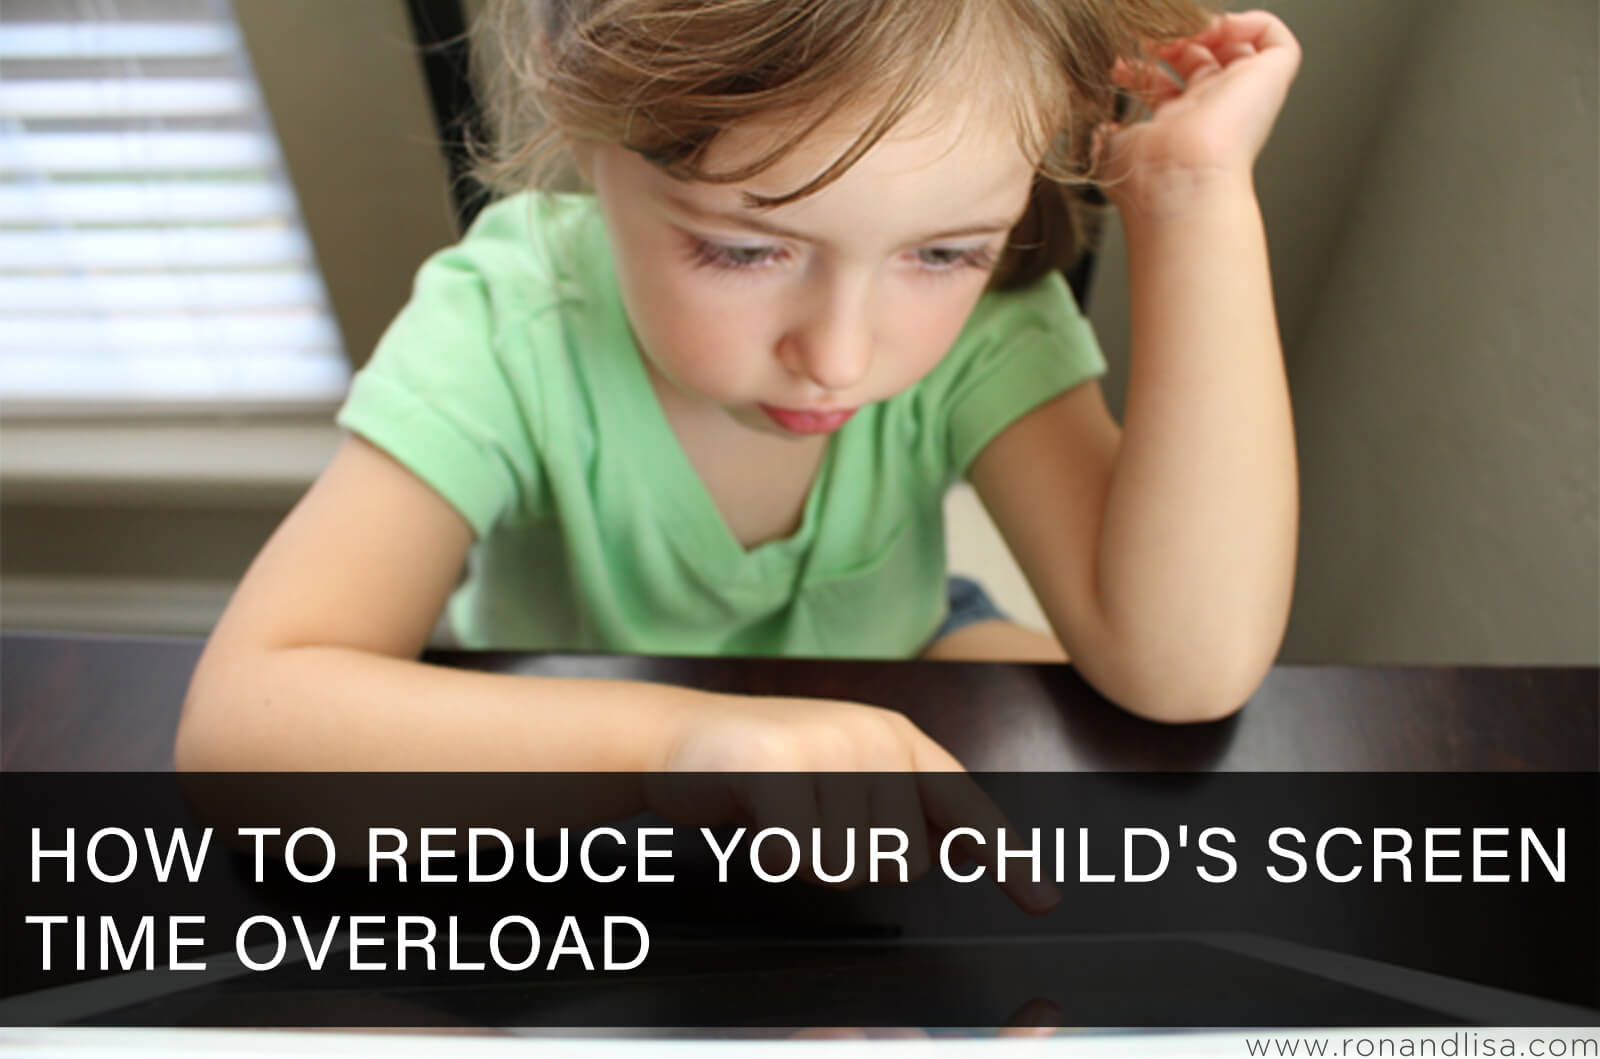 How to Reduce Your Child's Screen Time Overload